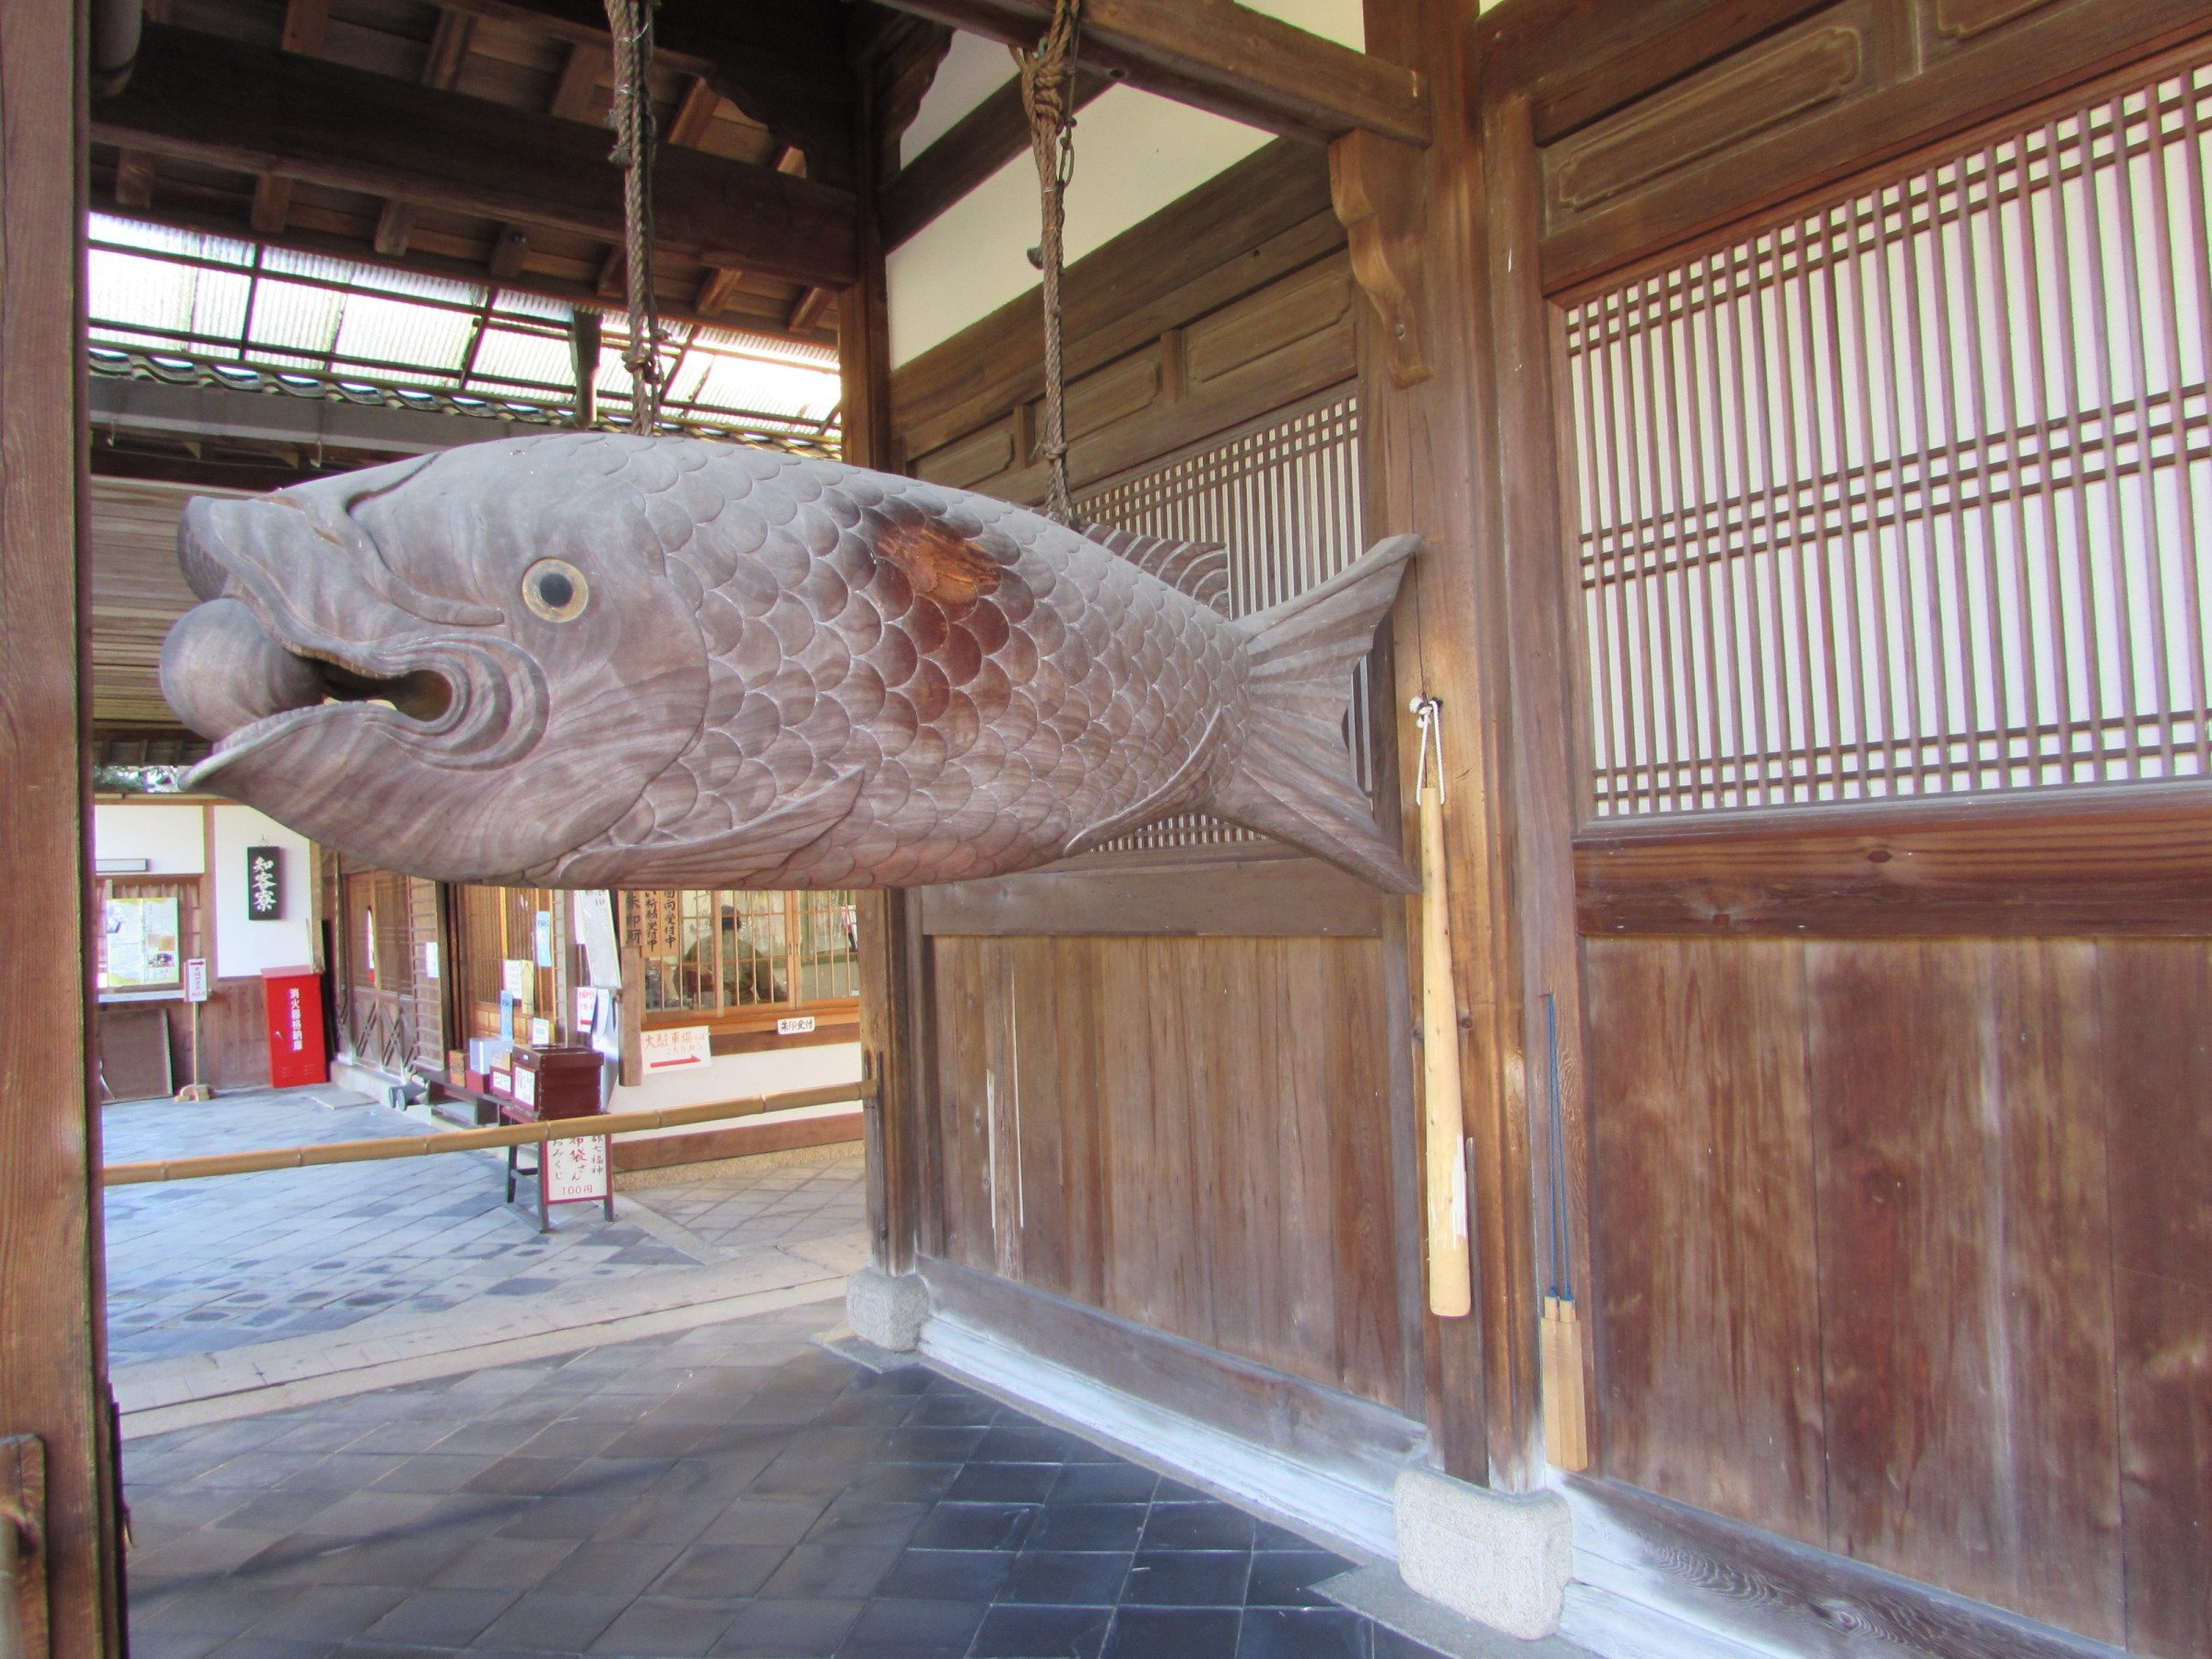 Another instrument that you'll come across is the 'Mokugyo' or 'Wooden Fish'. The fish is hollow and struck with a wooden mallet, which produces a pleasing clonking sound. The Mokugyo at Mampuku-ji is prized as a particularly fine specimen - not least for its impressive size!